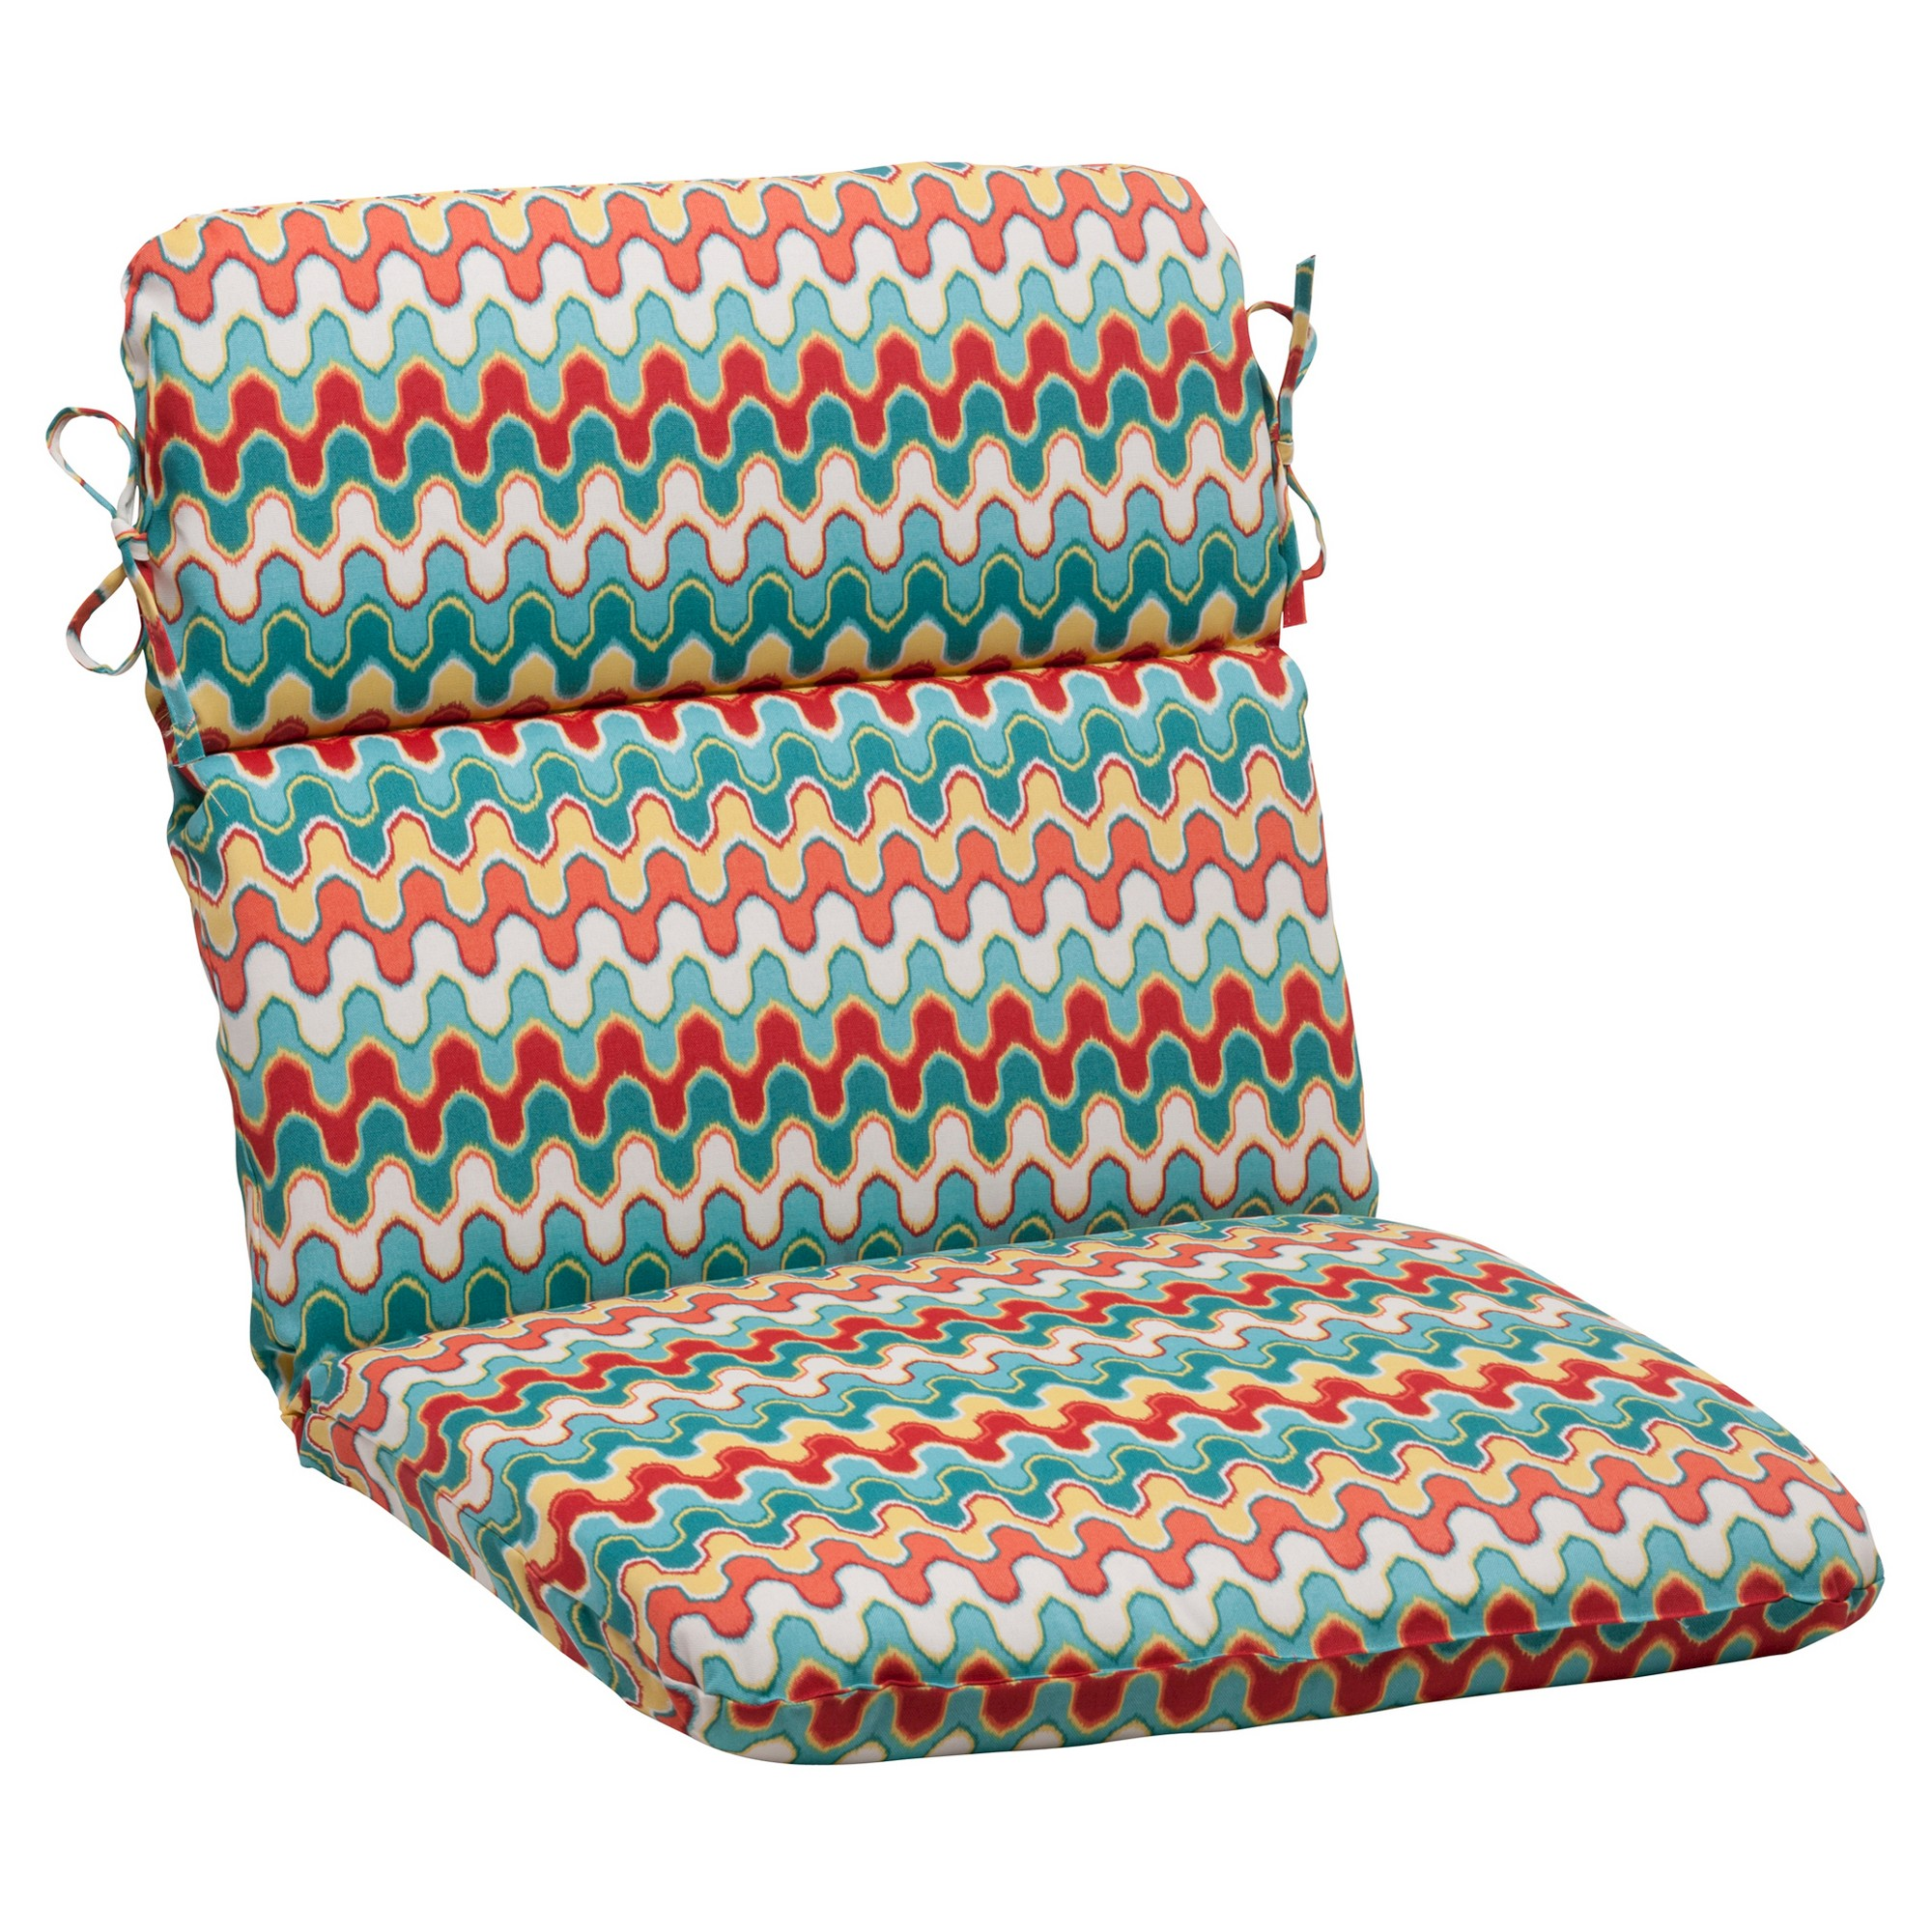 Outdoor Rounded Chair Cushion   Red/Turquoise Chevron